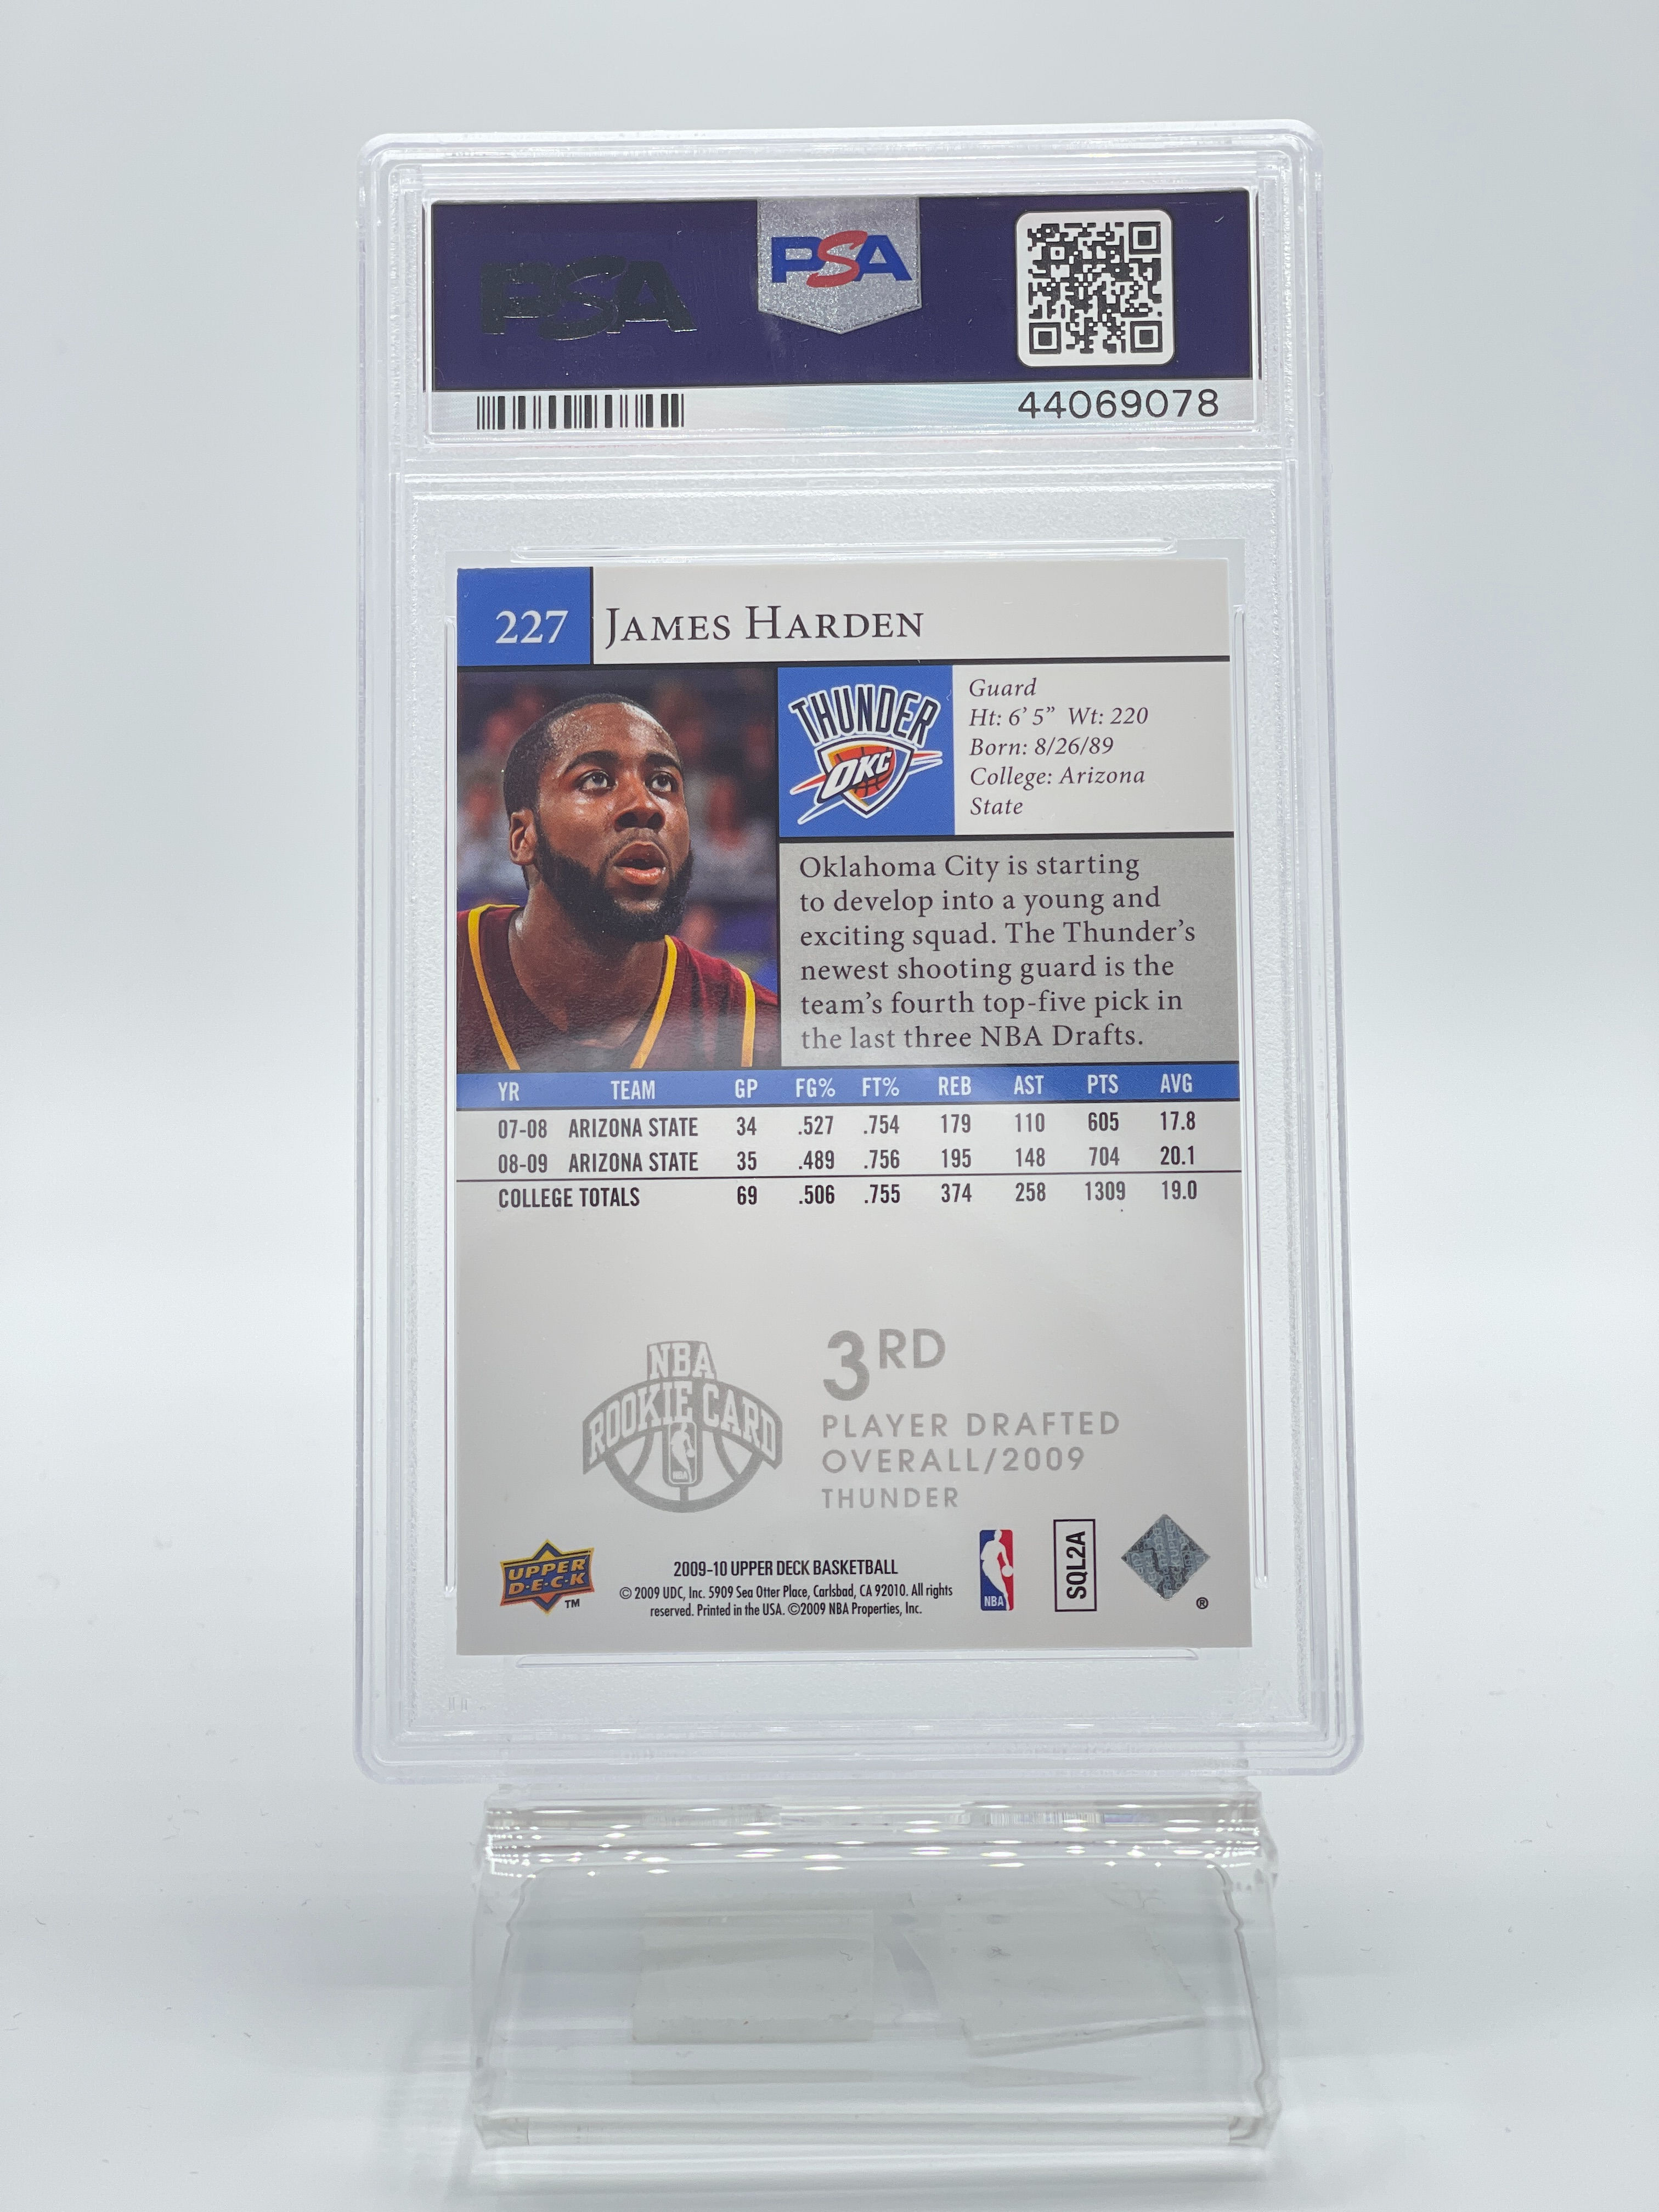 2009 Upper Deck James Harden Rookie Card PSA 9